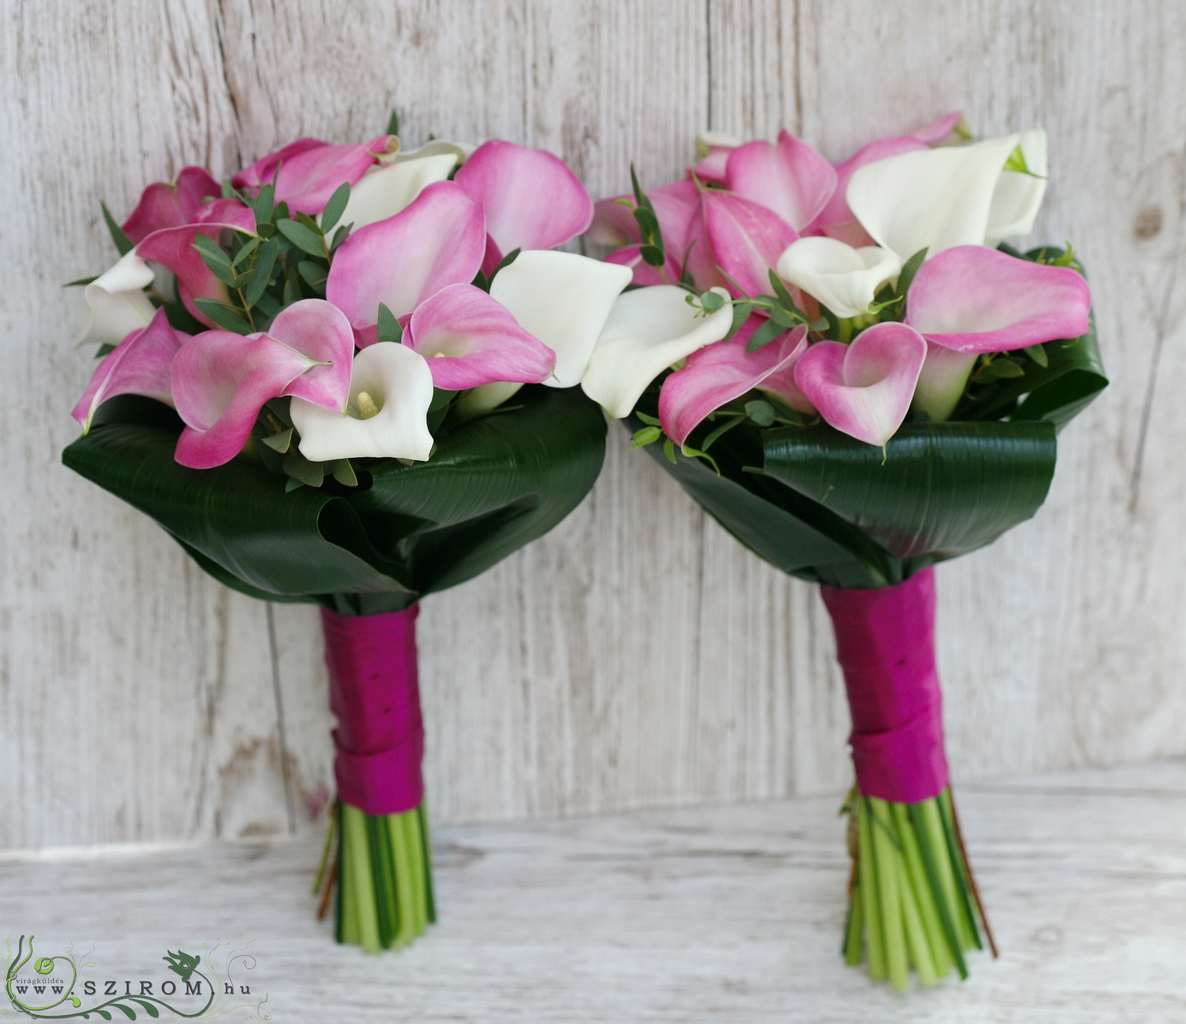 bridal bouquet (calla, white, pink)